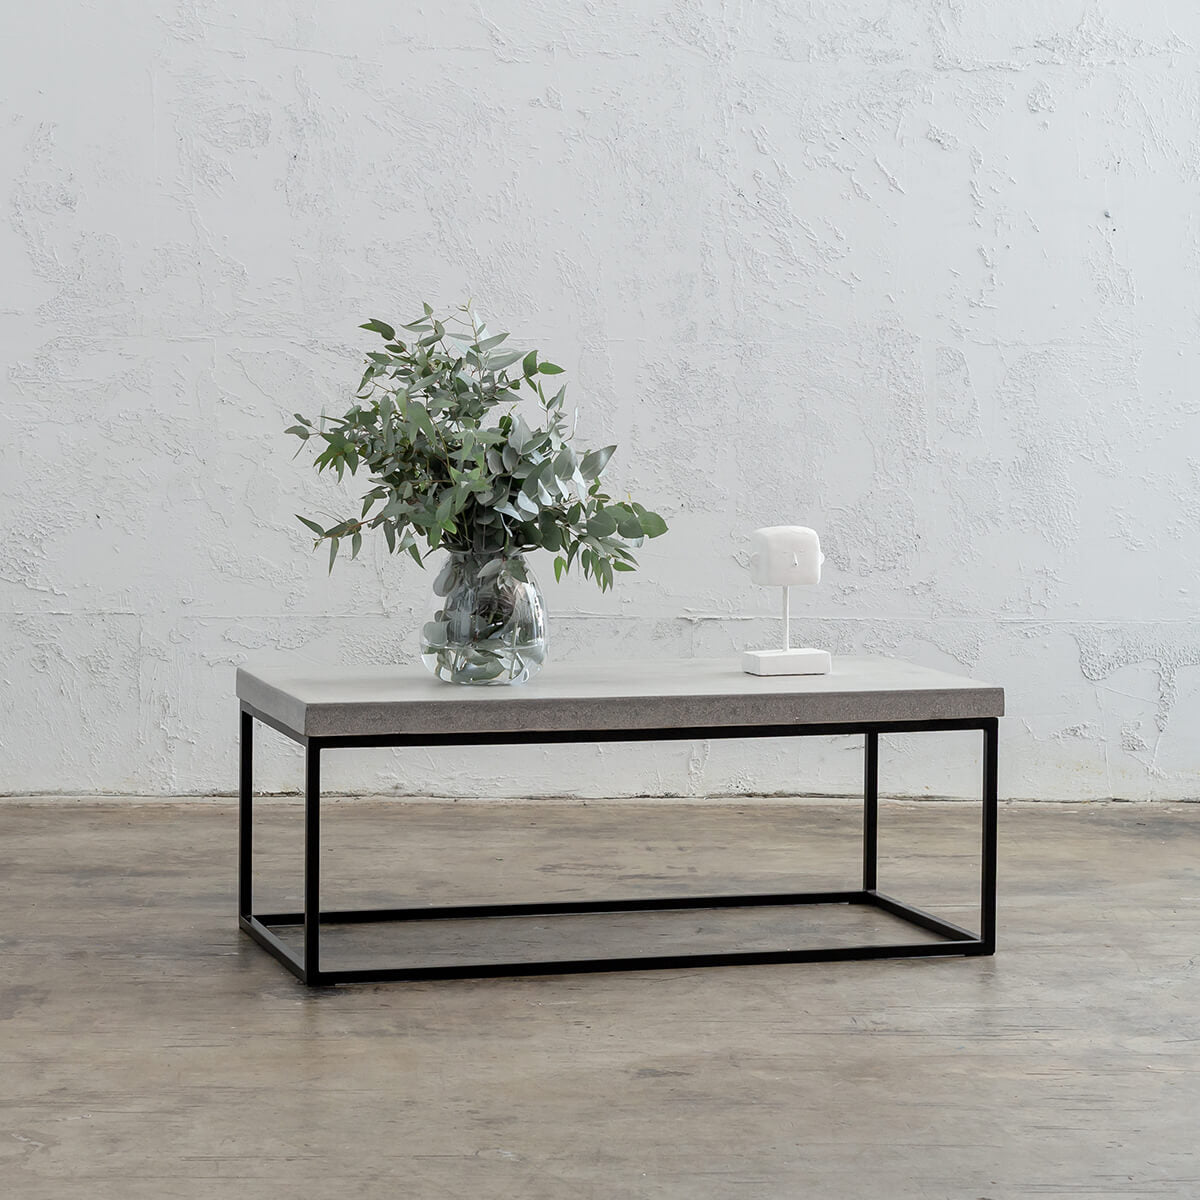 ARIA CONCRETE GRANITE RECTANGLE COFFEE TABLE   |  ZINC ASH WHITE